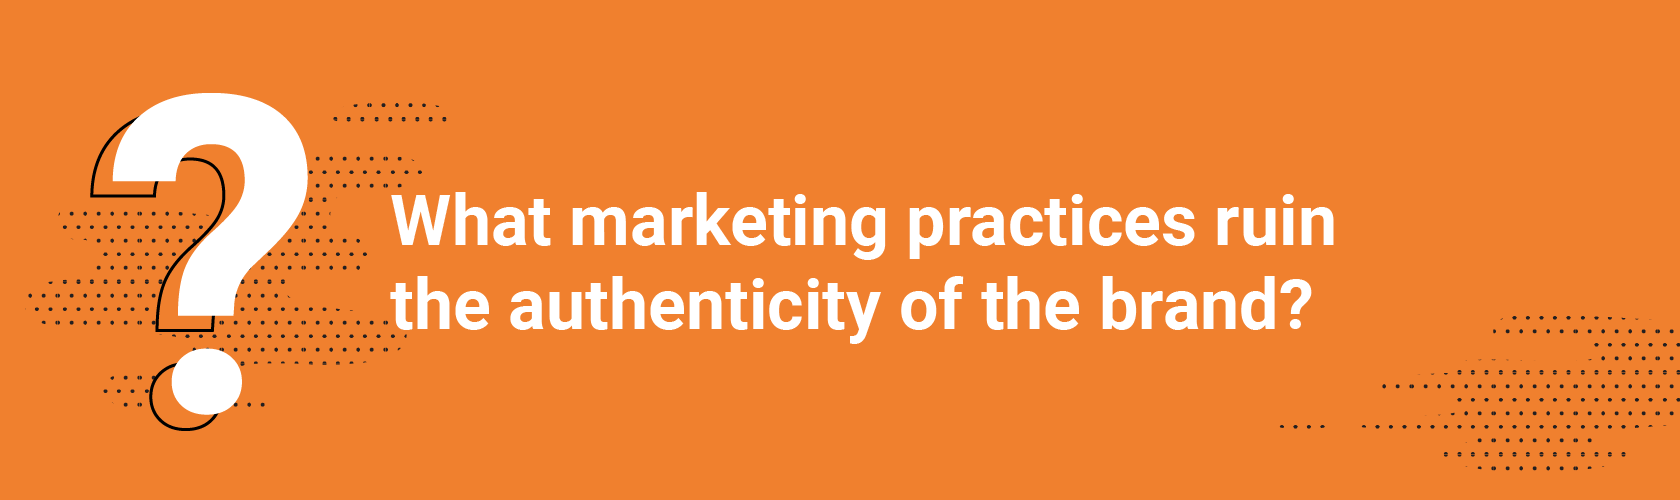 What marketing practices ruin the authenticity of the brand?